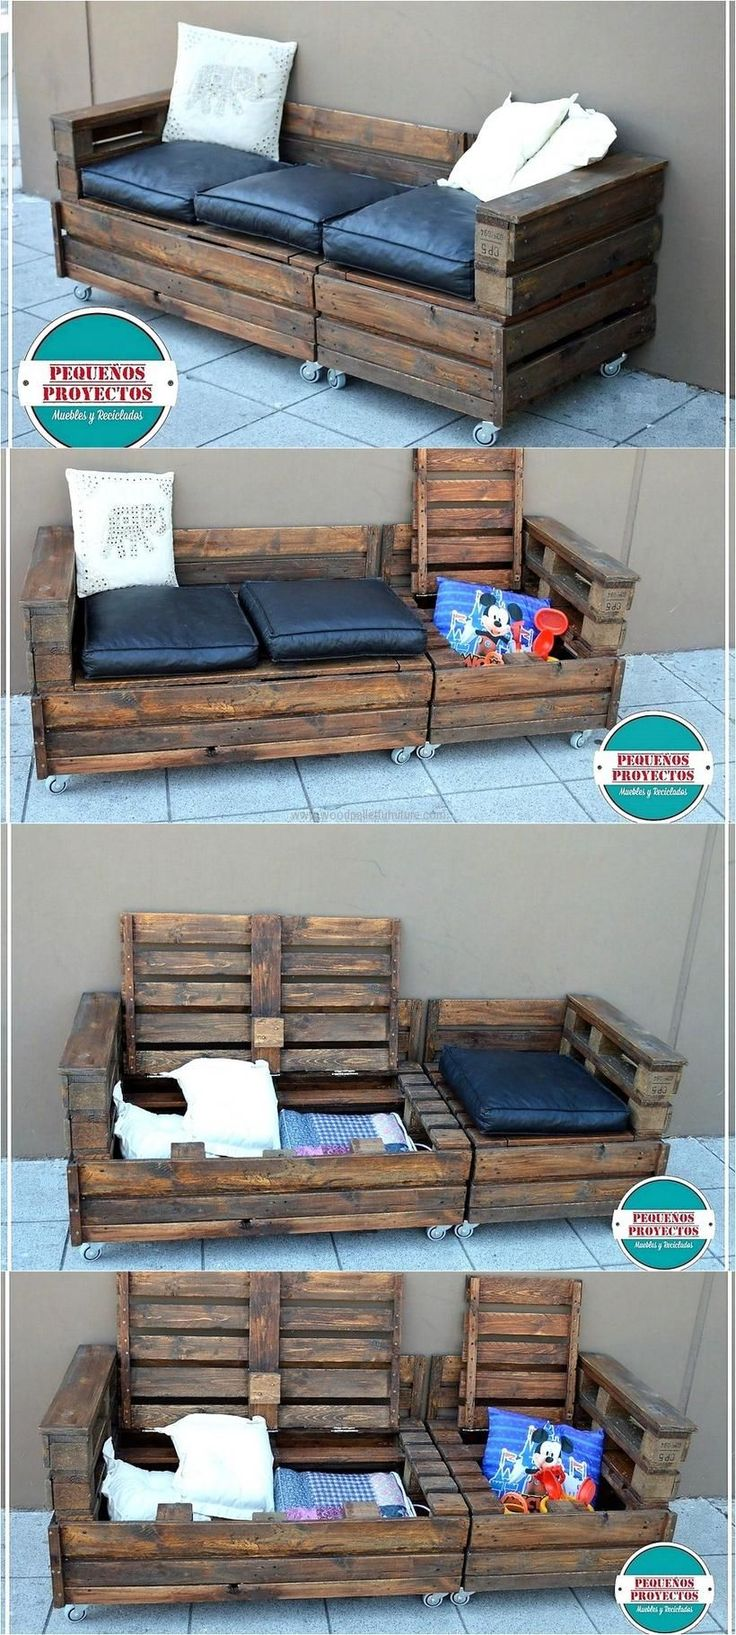 25 great ideas about indoor pallet furniture on pinterest for Great pallet ideas